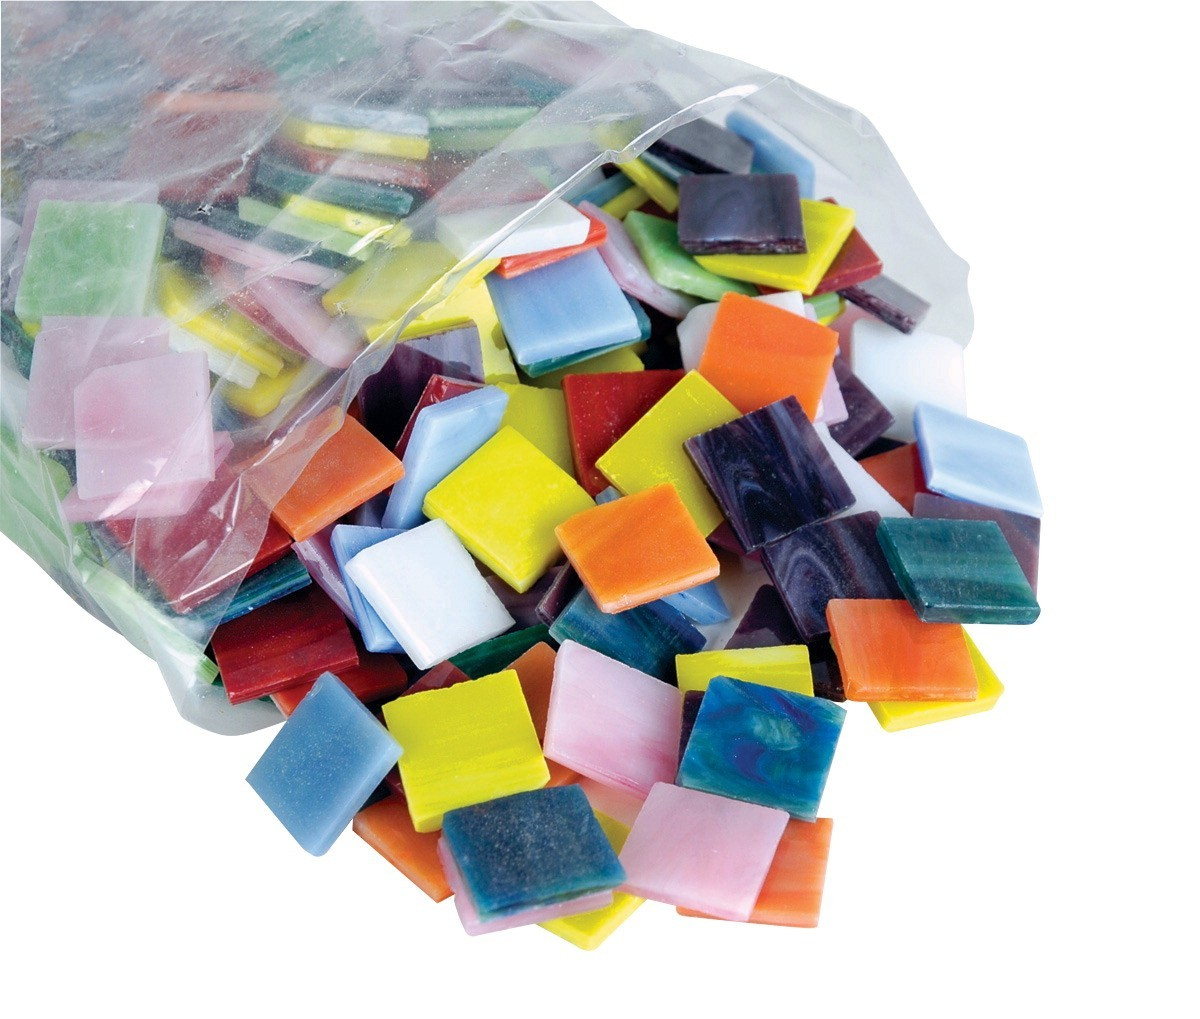 Stained Glass Tiles - Mosaic Glass Chip Assortment 3/4 x 3/4 , 4lbs/Bag (450/bag) - Assorted Solid Colors